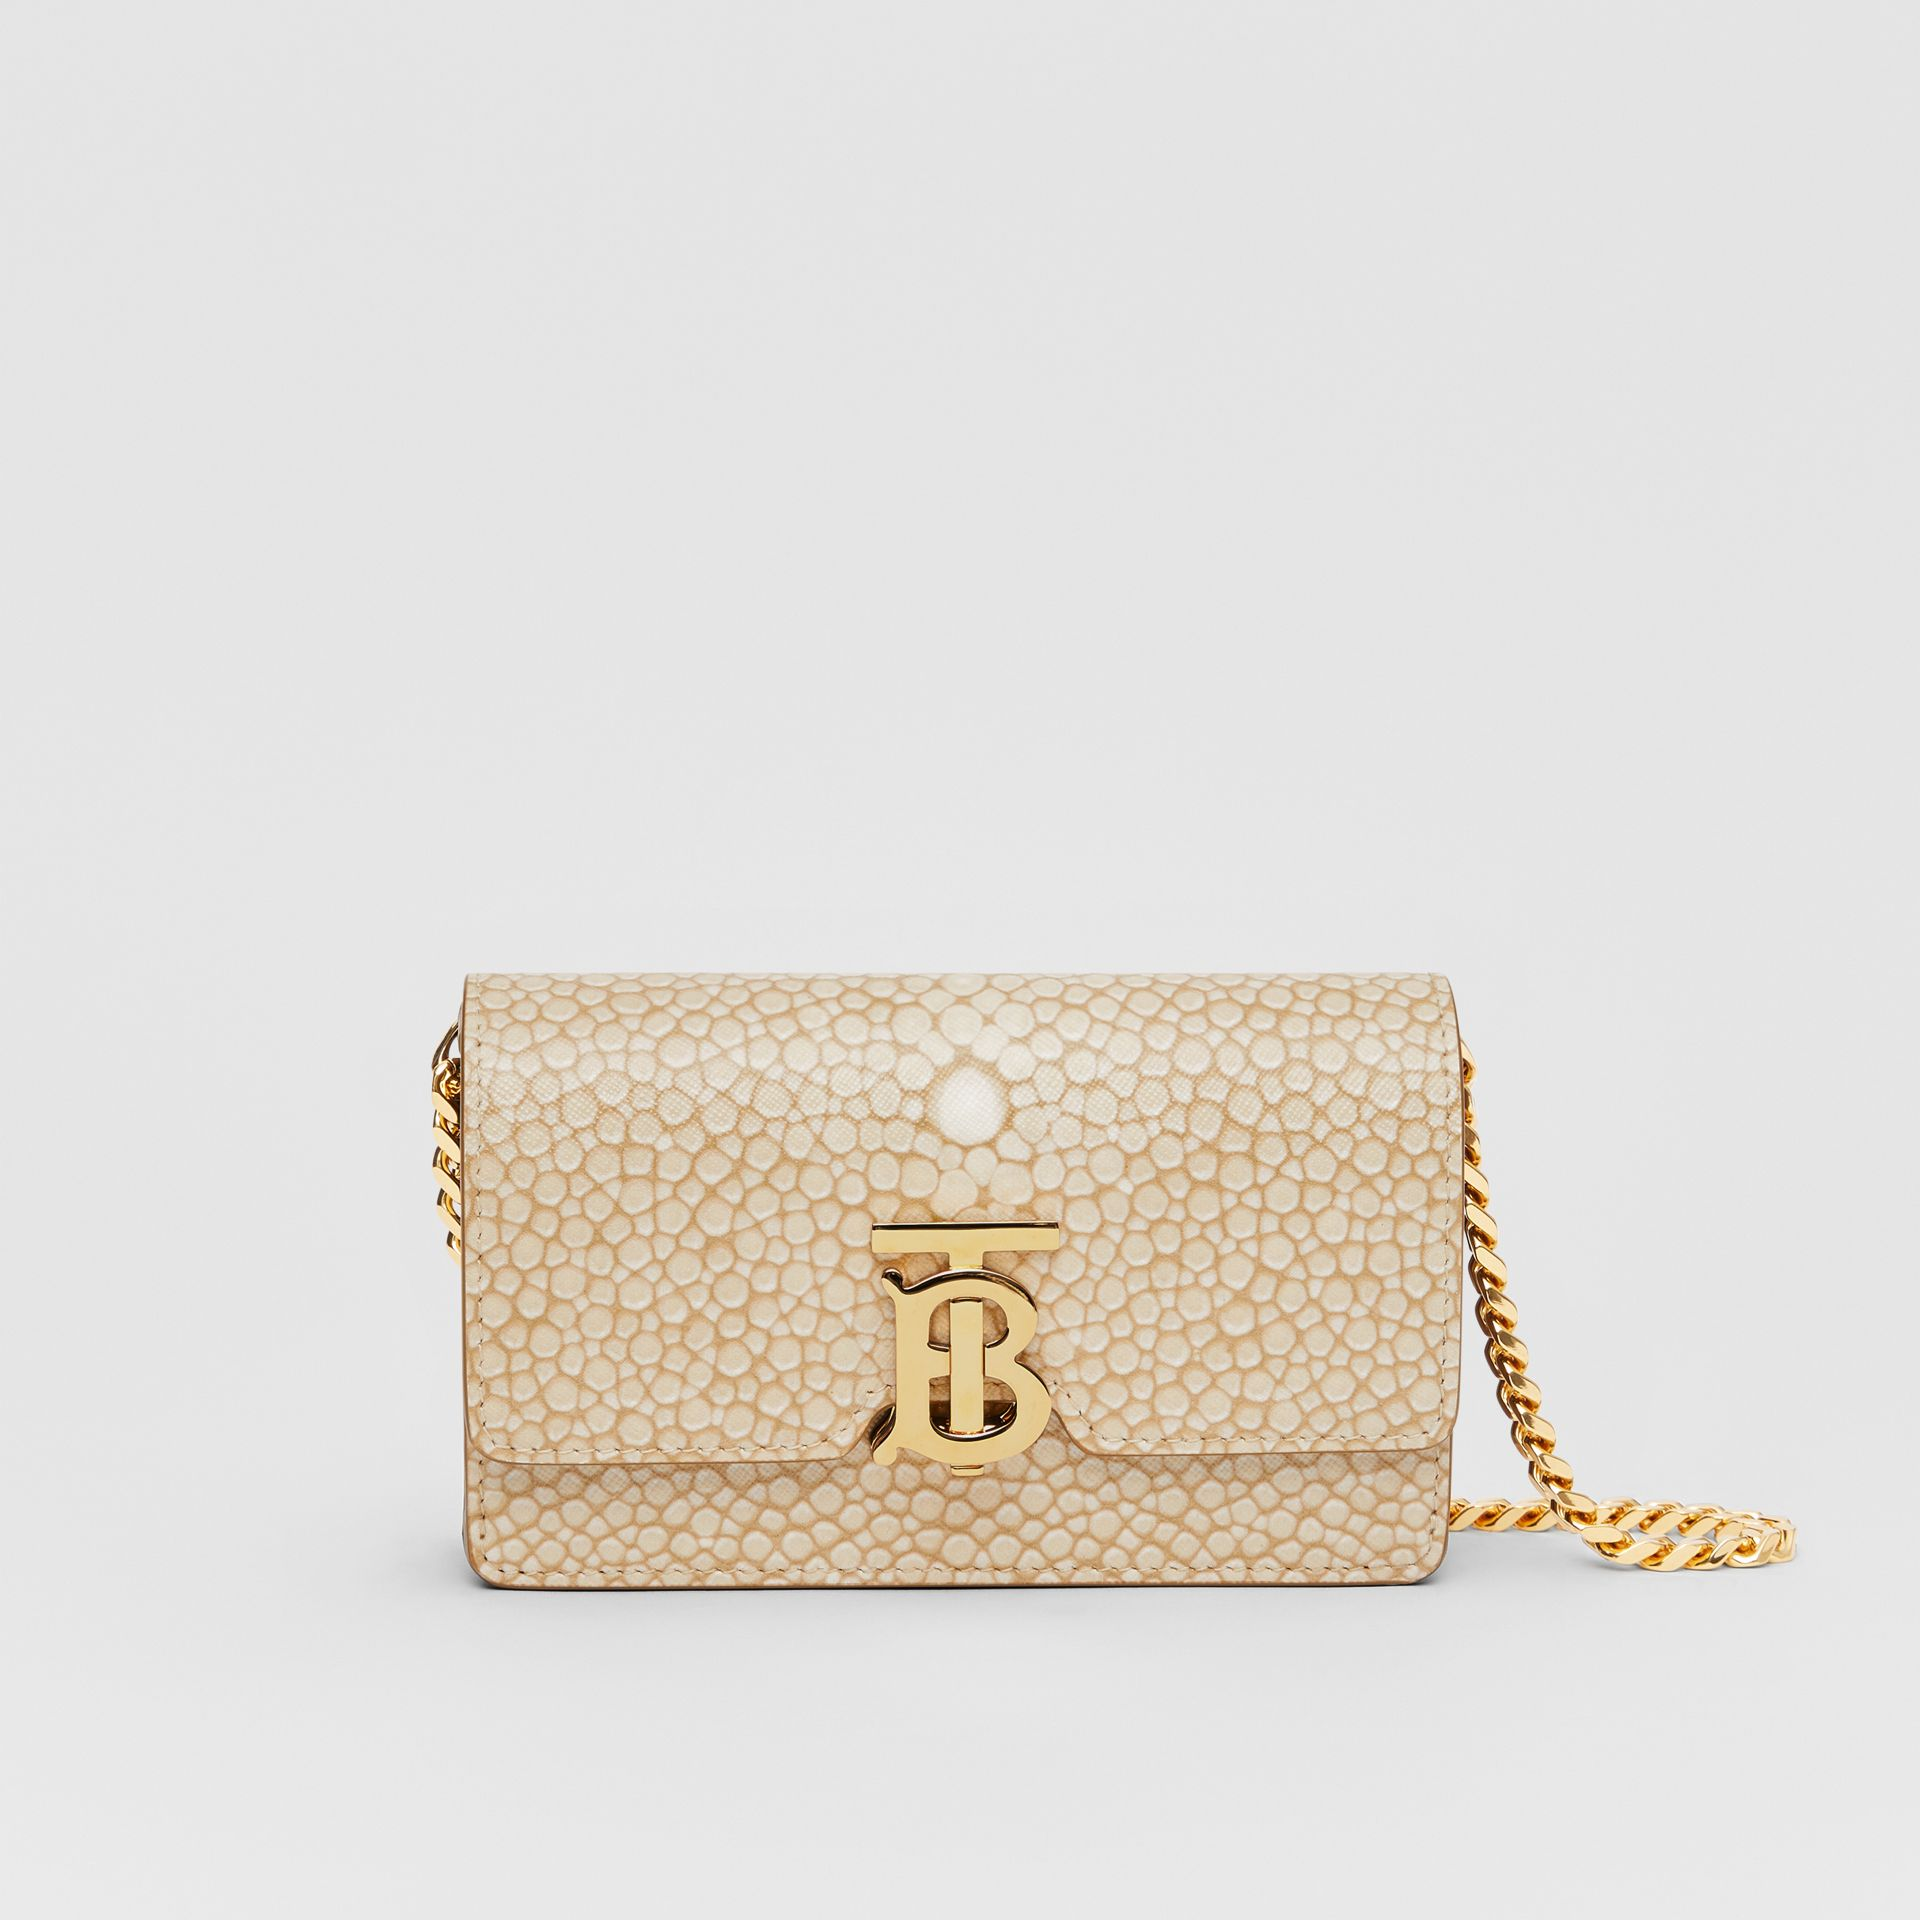 Mini Fish-scale Print Leather Shoulder Bag in Light Sand - Women | Burberry - gallery image 0